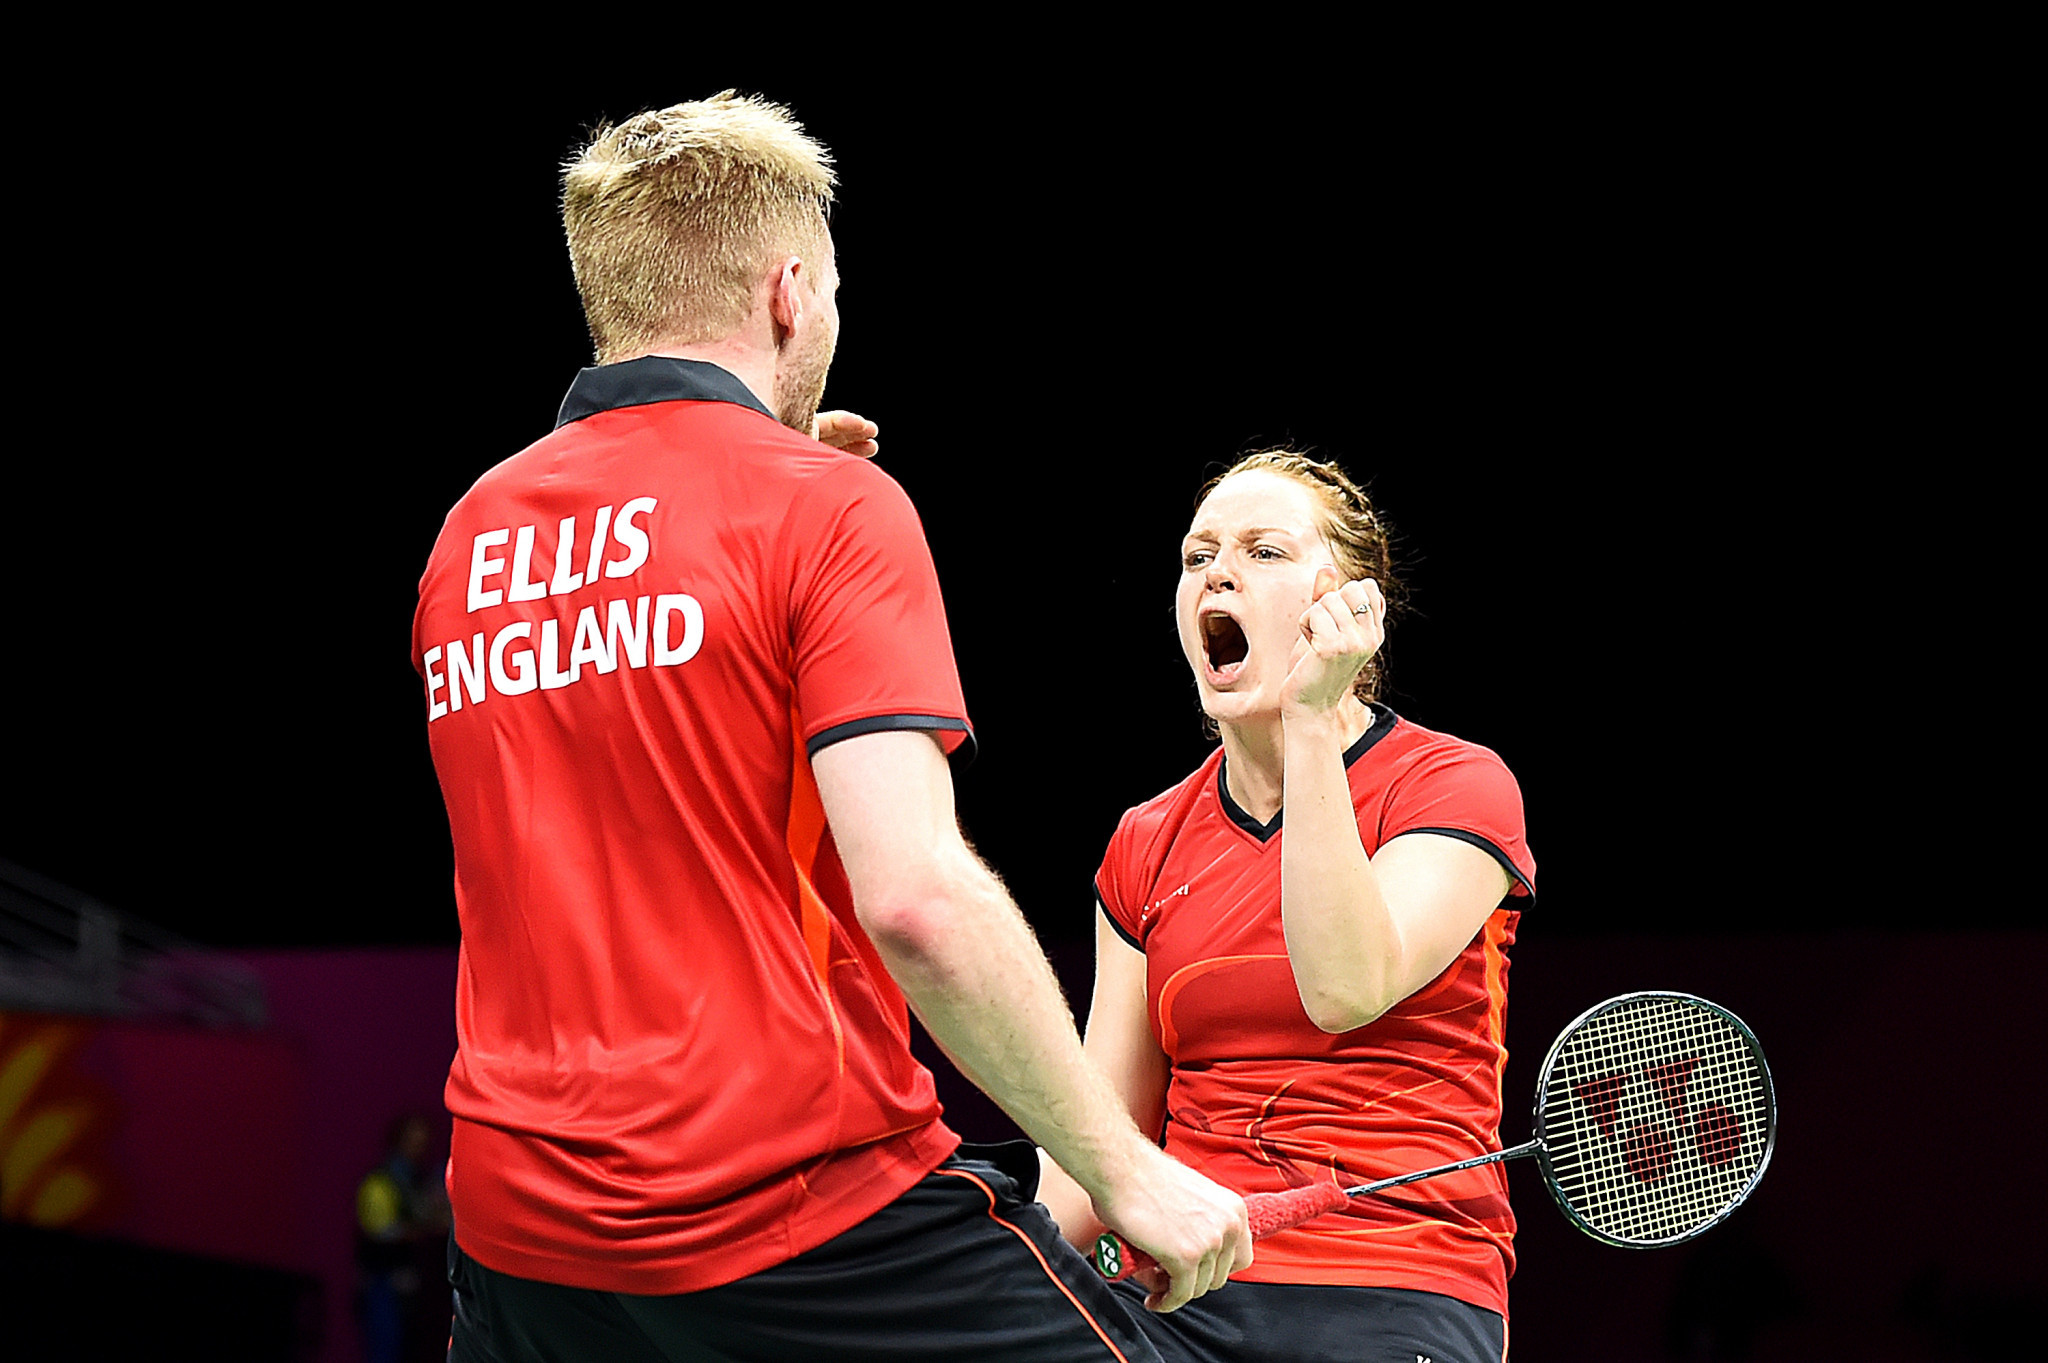 England's unseeded Marcus Ellis and Lauren Smith defeated fourth seeds Yuta Watanabe and Arisa Higashino of Japan to make the quarter-finals of the All England Open Badminton Championships in Birmingham ©Getty Images